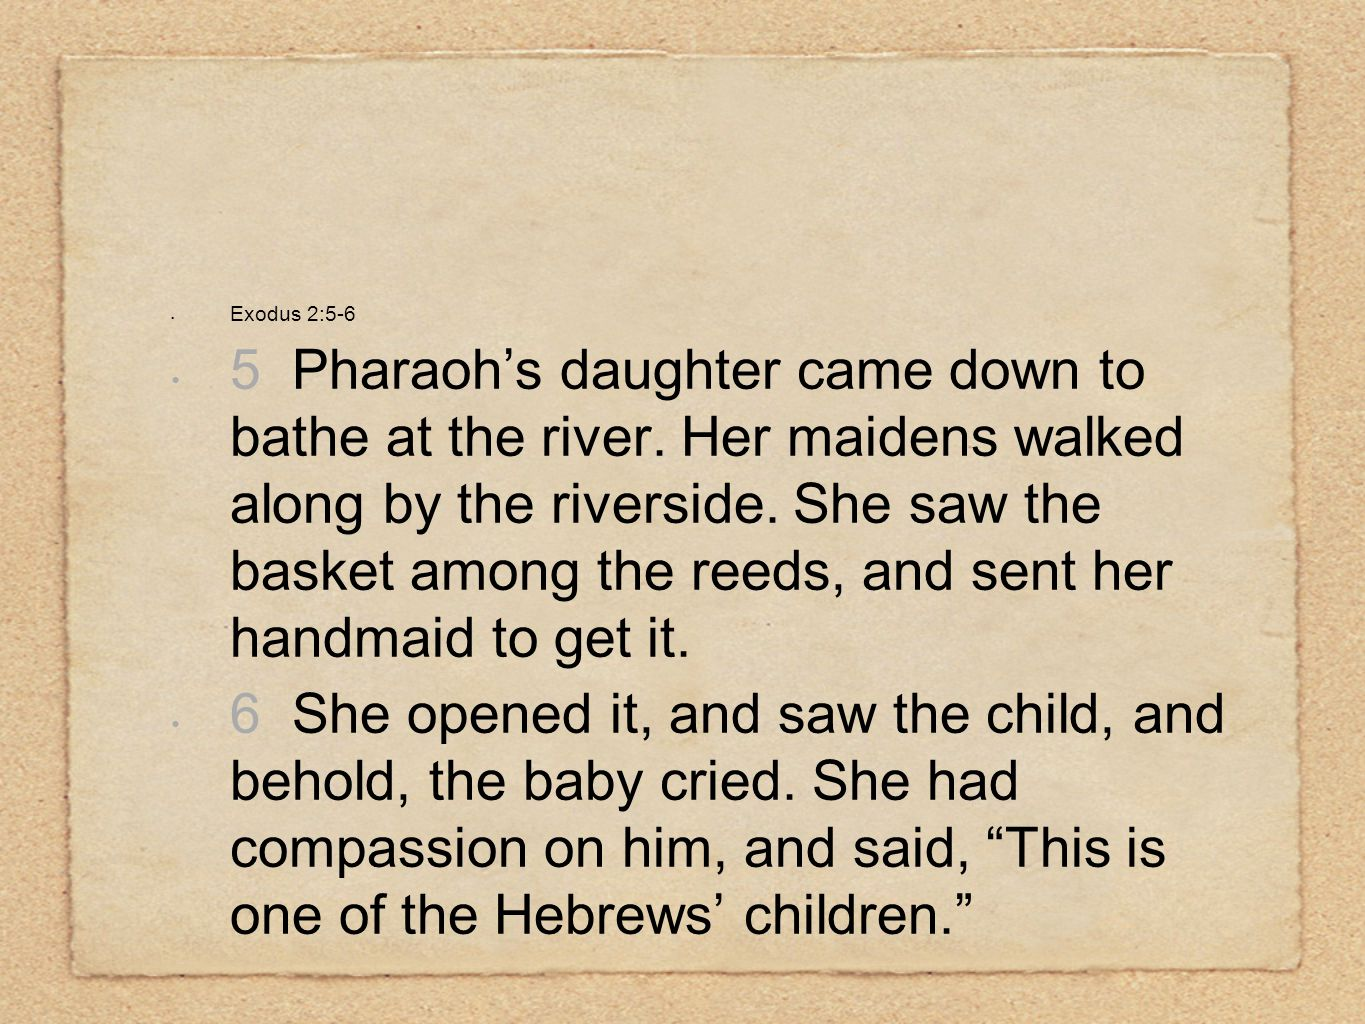 Exodus 2:5-6 5 Pharaoh's daughter came down to bathe at the river. Her maidens walked along by the riverside. She saw the basket among the reeds, and